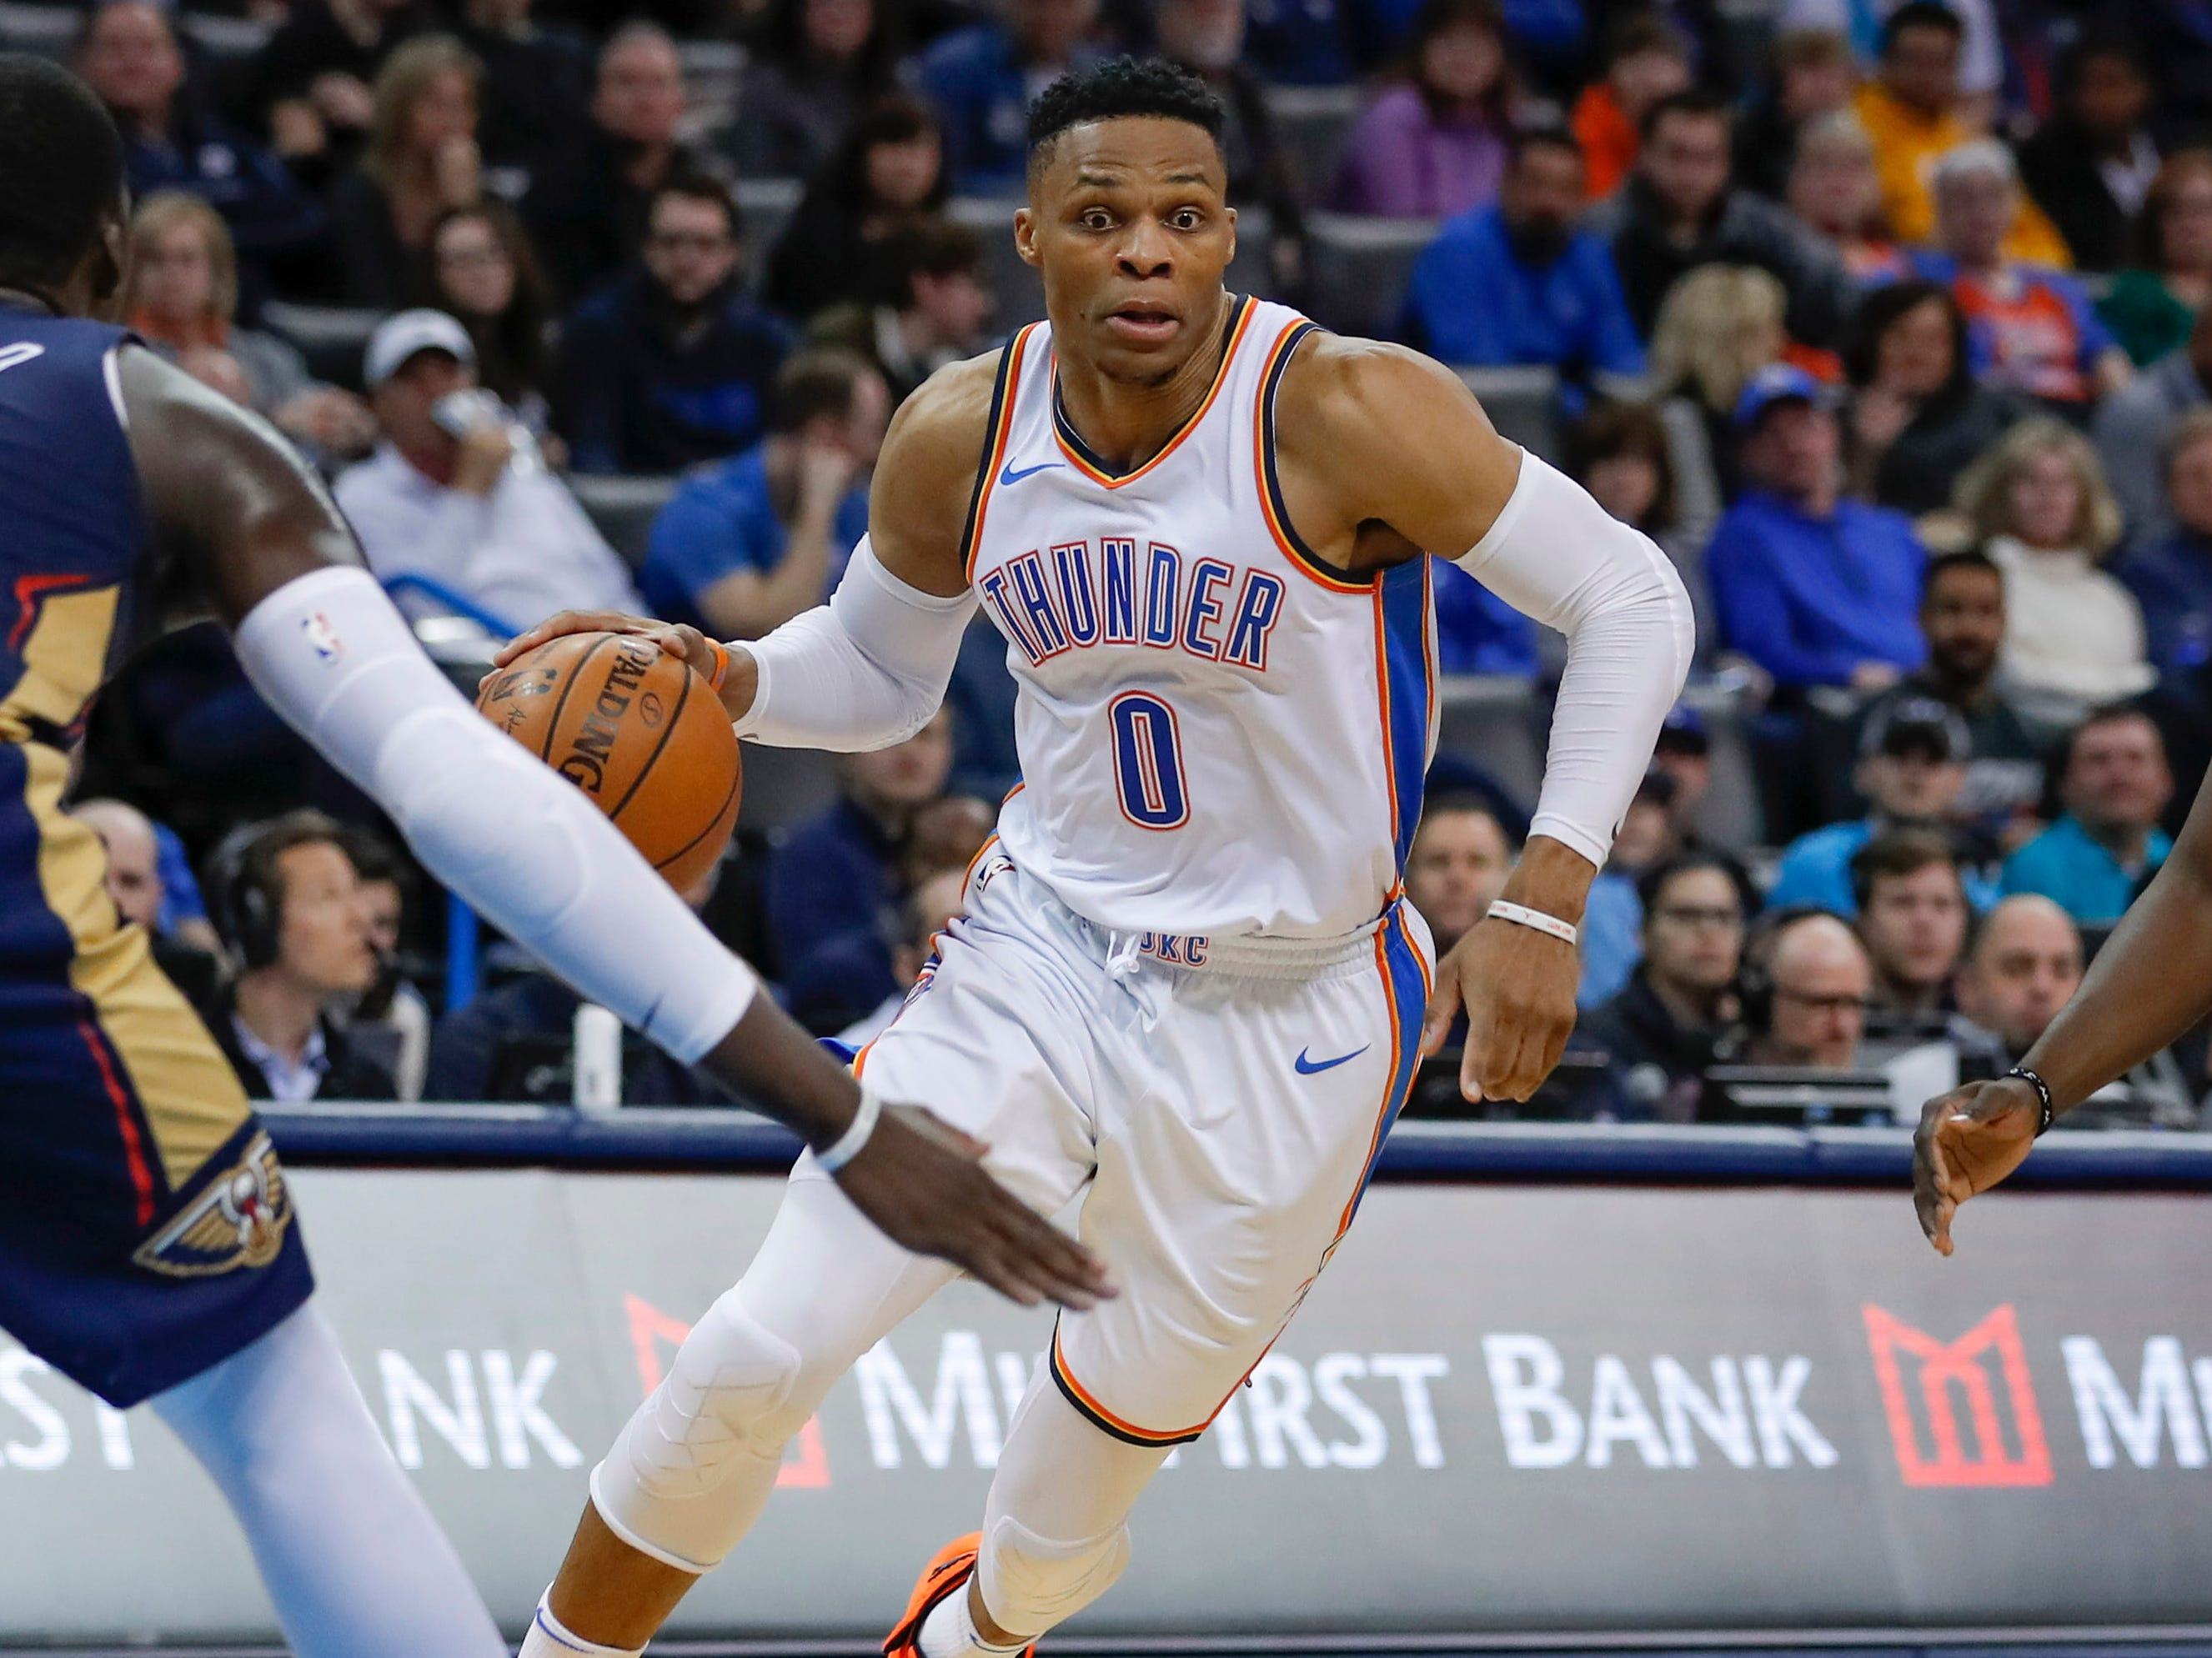 61. Russell Westbrook, Thunder (Jan. 24): 23 points, 17 rebounds, 16 assists in 122-116 win over Pelicans (15th of season).